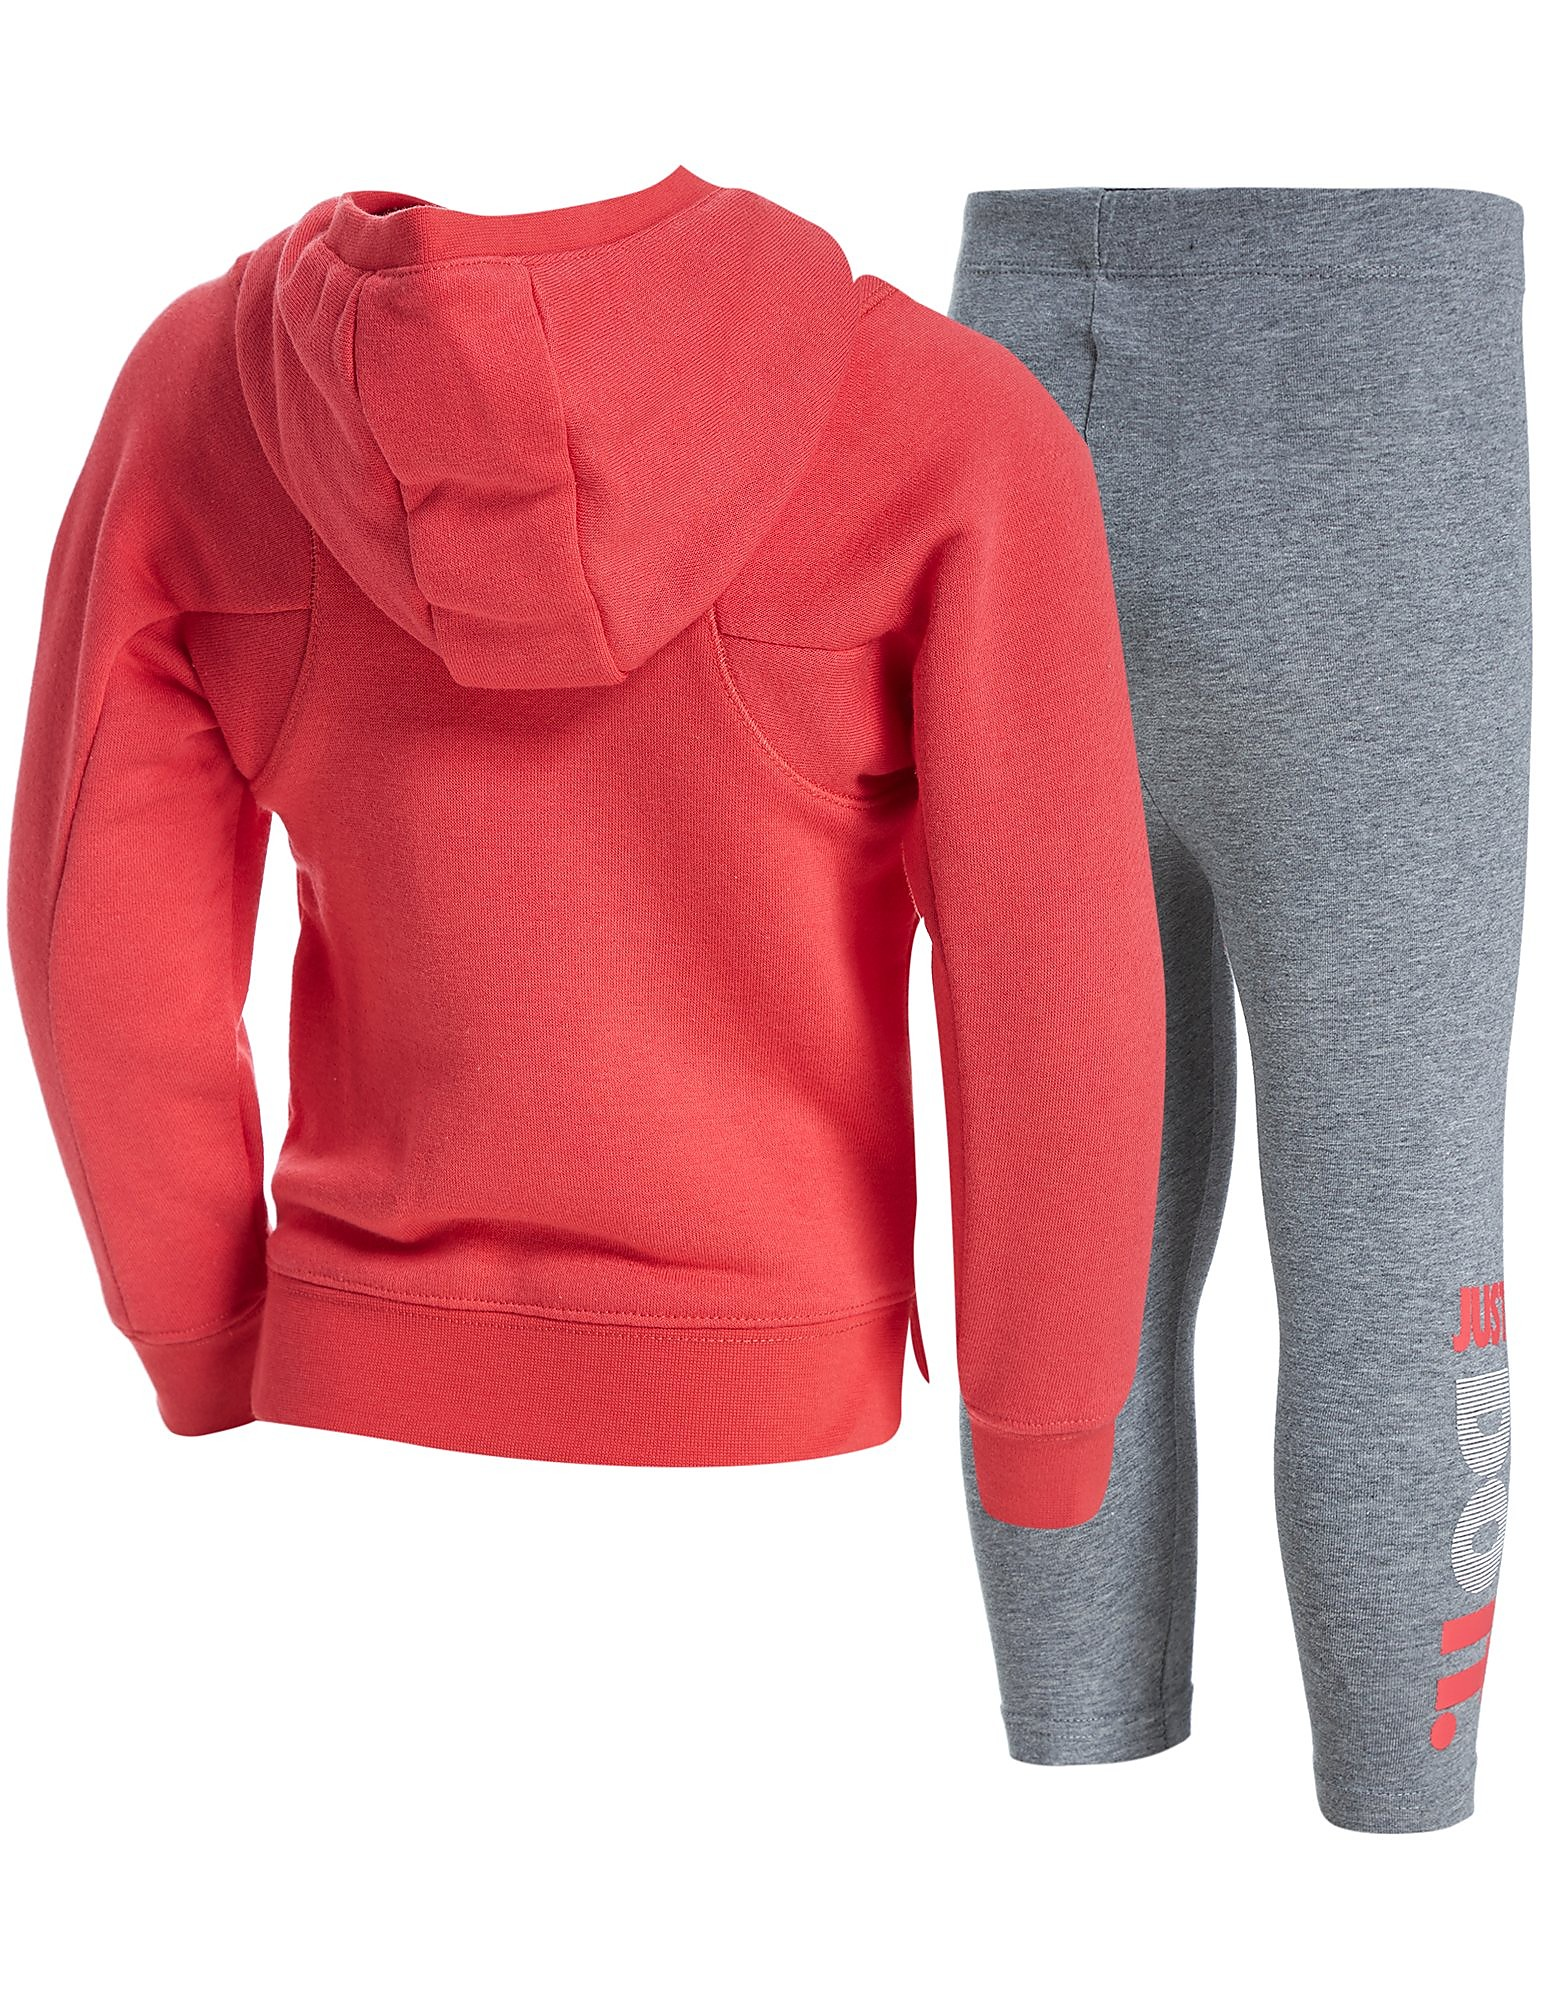 Nike SB Just Do It Hoody/ Leggings Set Girls